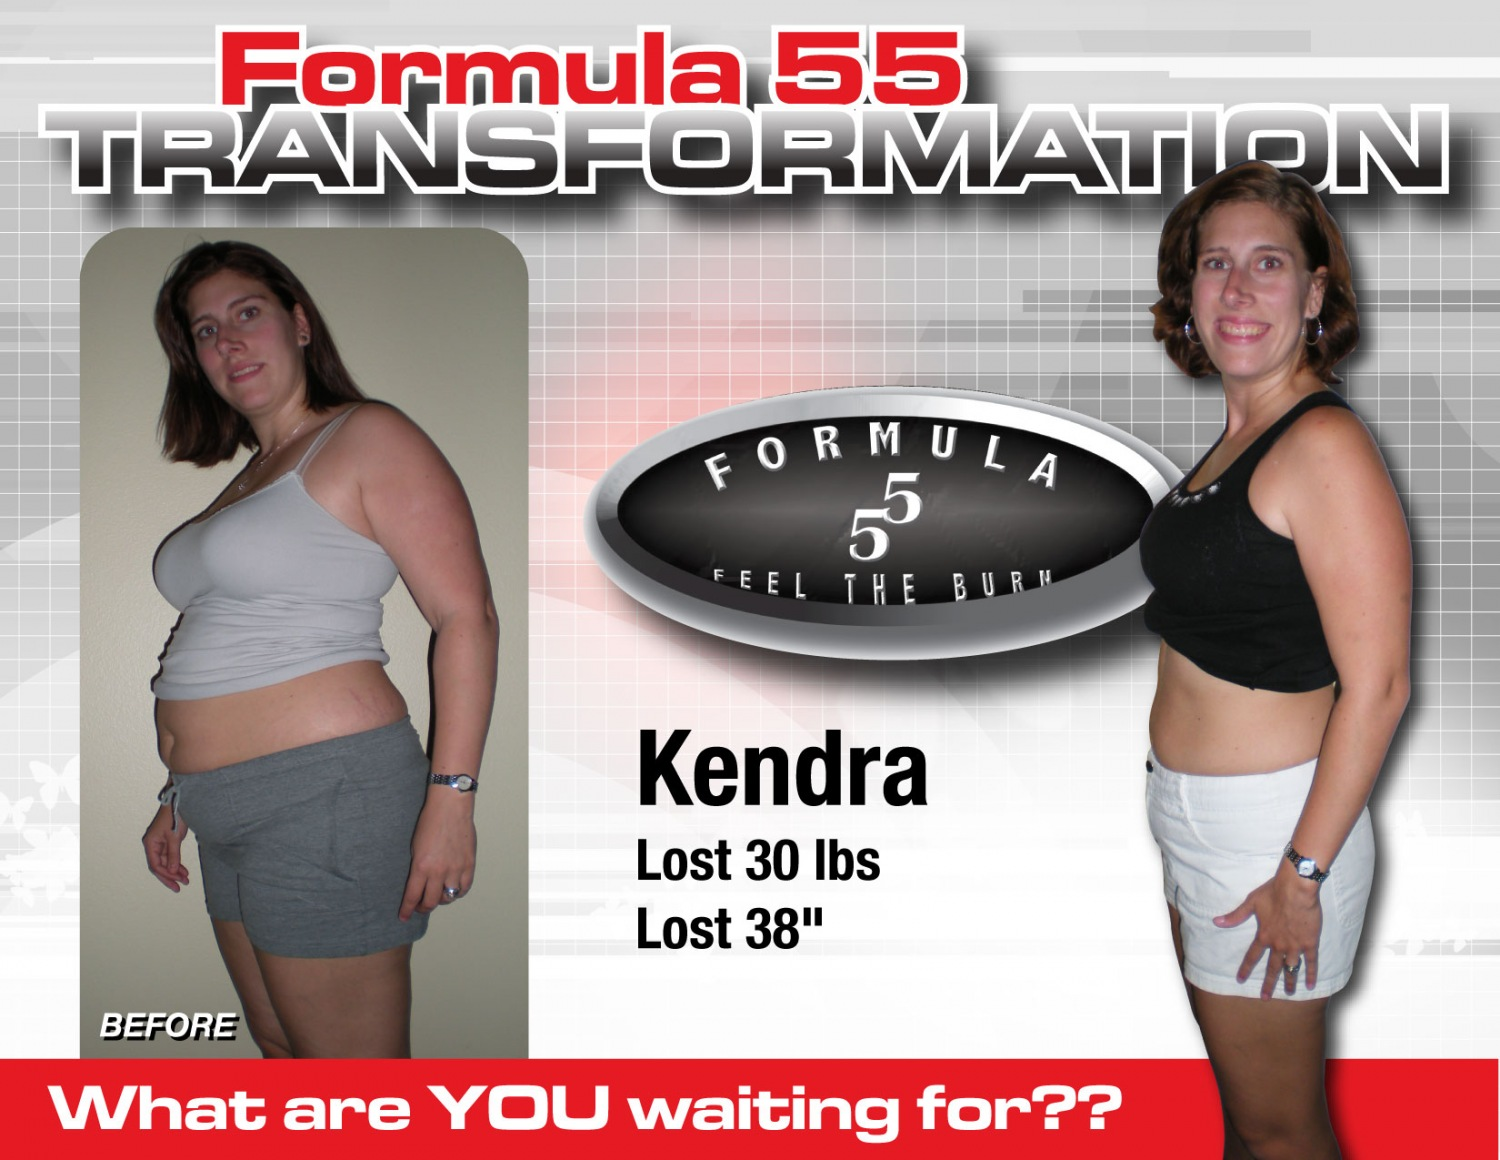 form-55-Transformation-Kendra.jpg